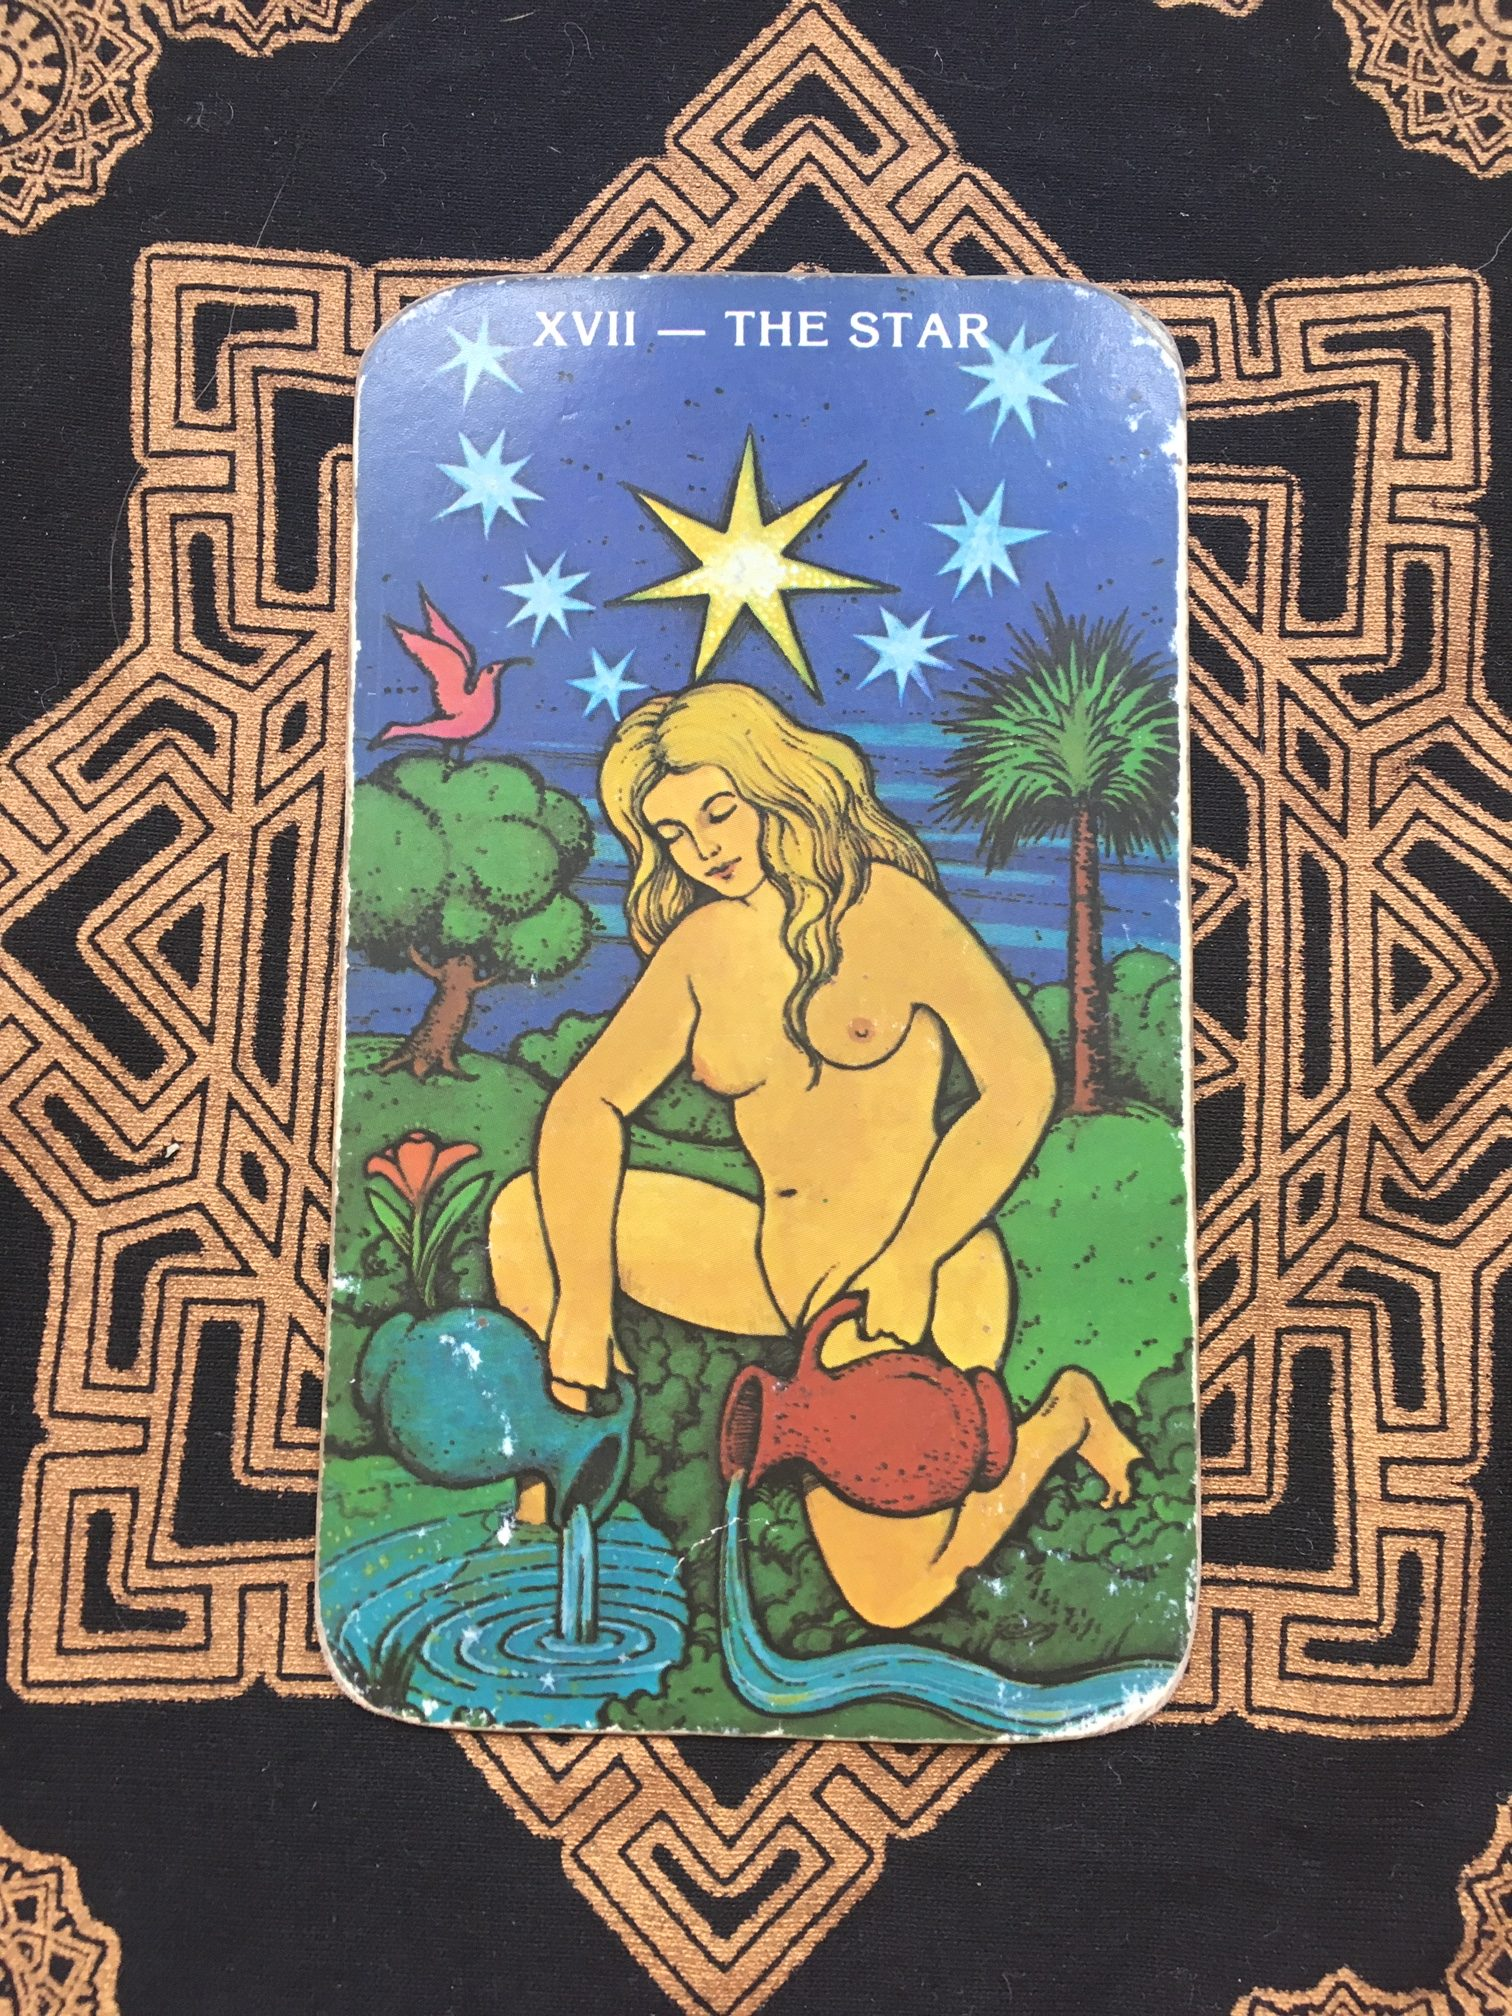 TAURUS (April 20 - May 20) The Hierophant & The King of Pentacles